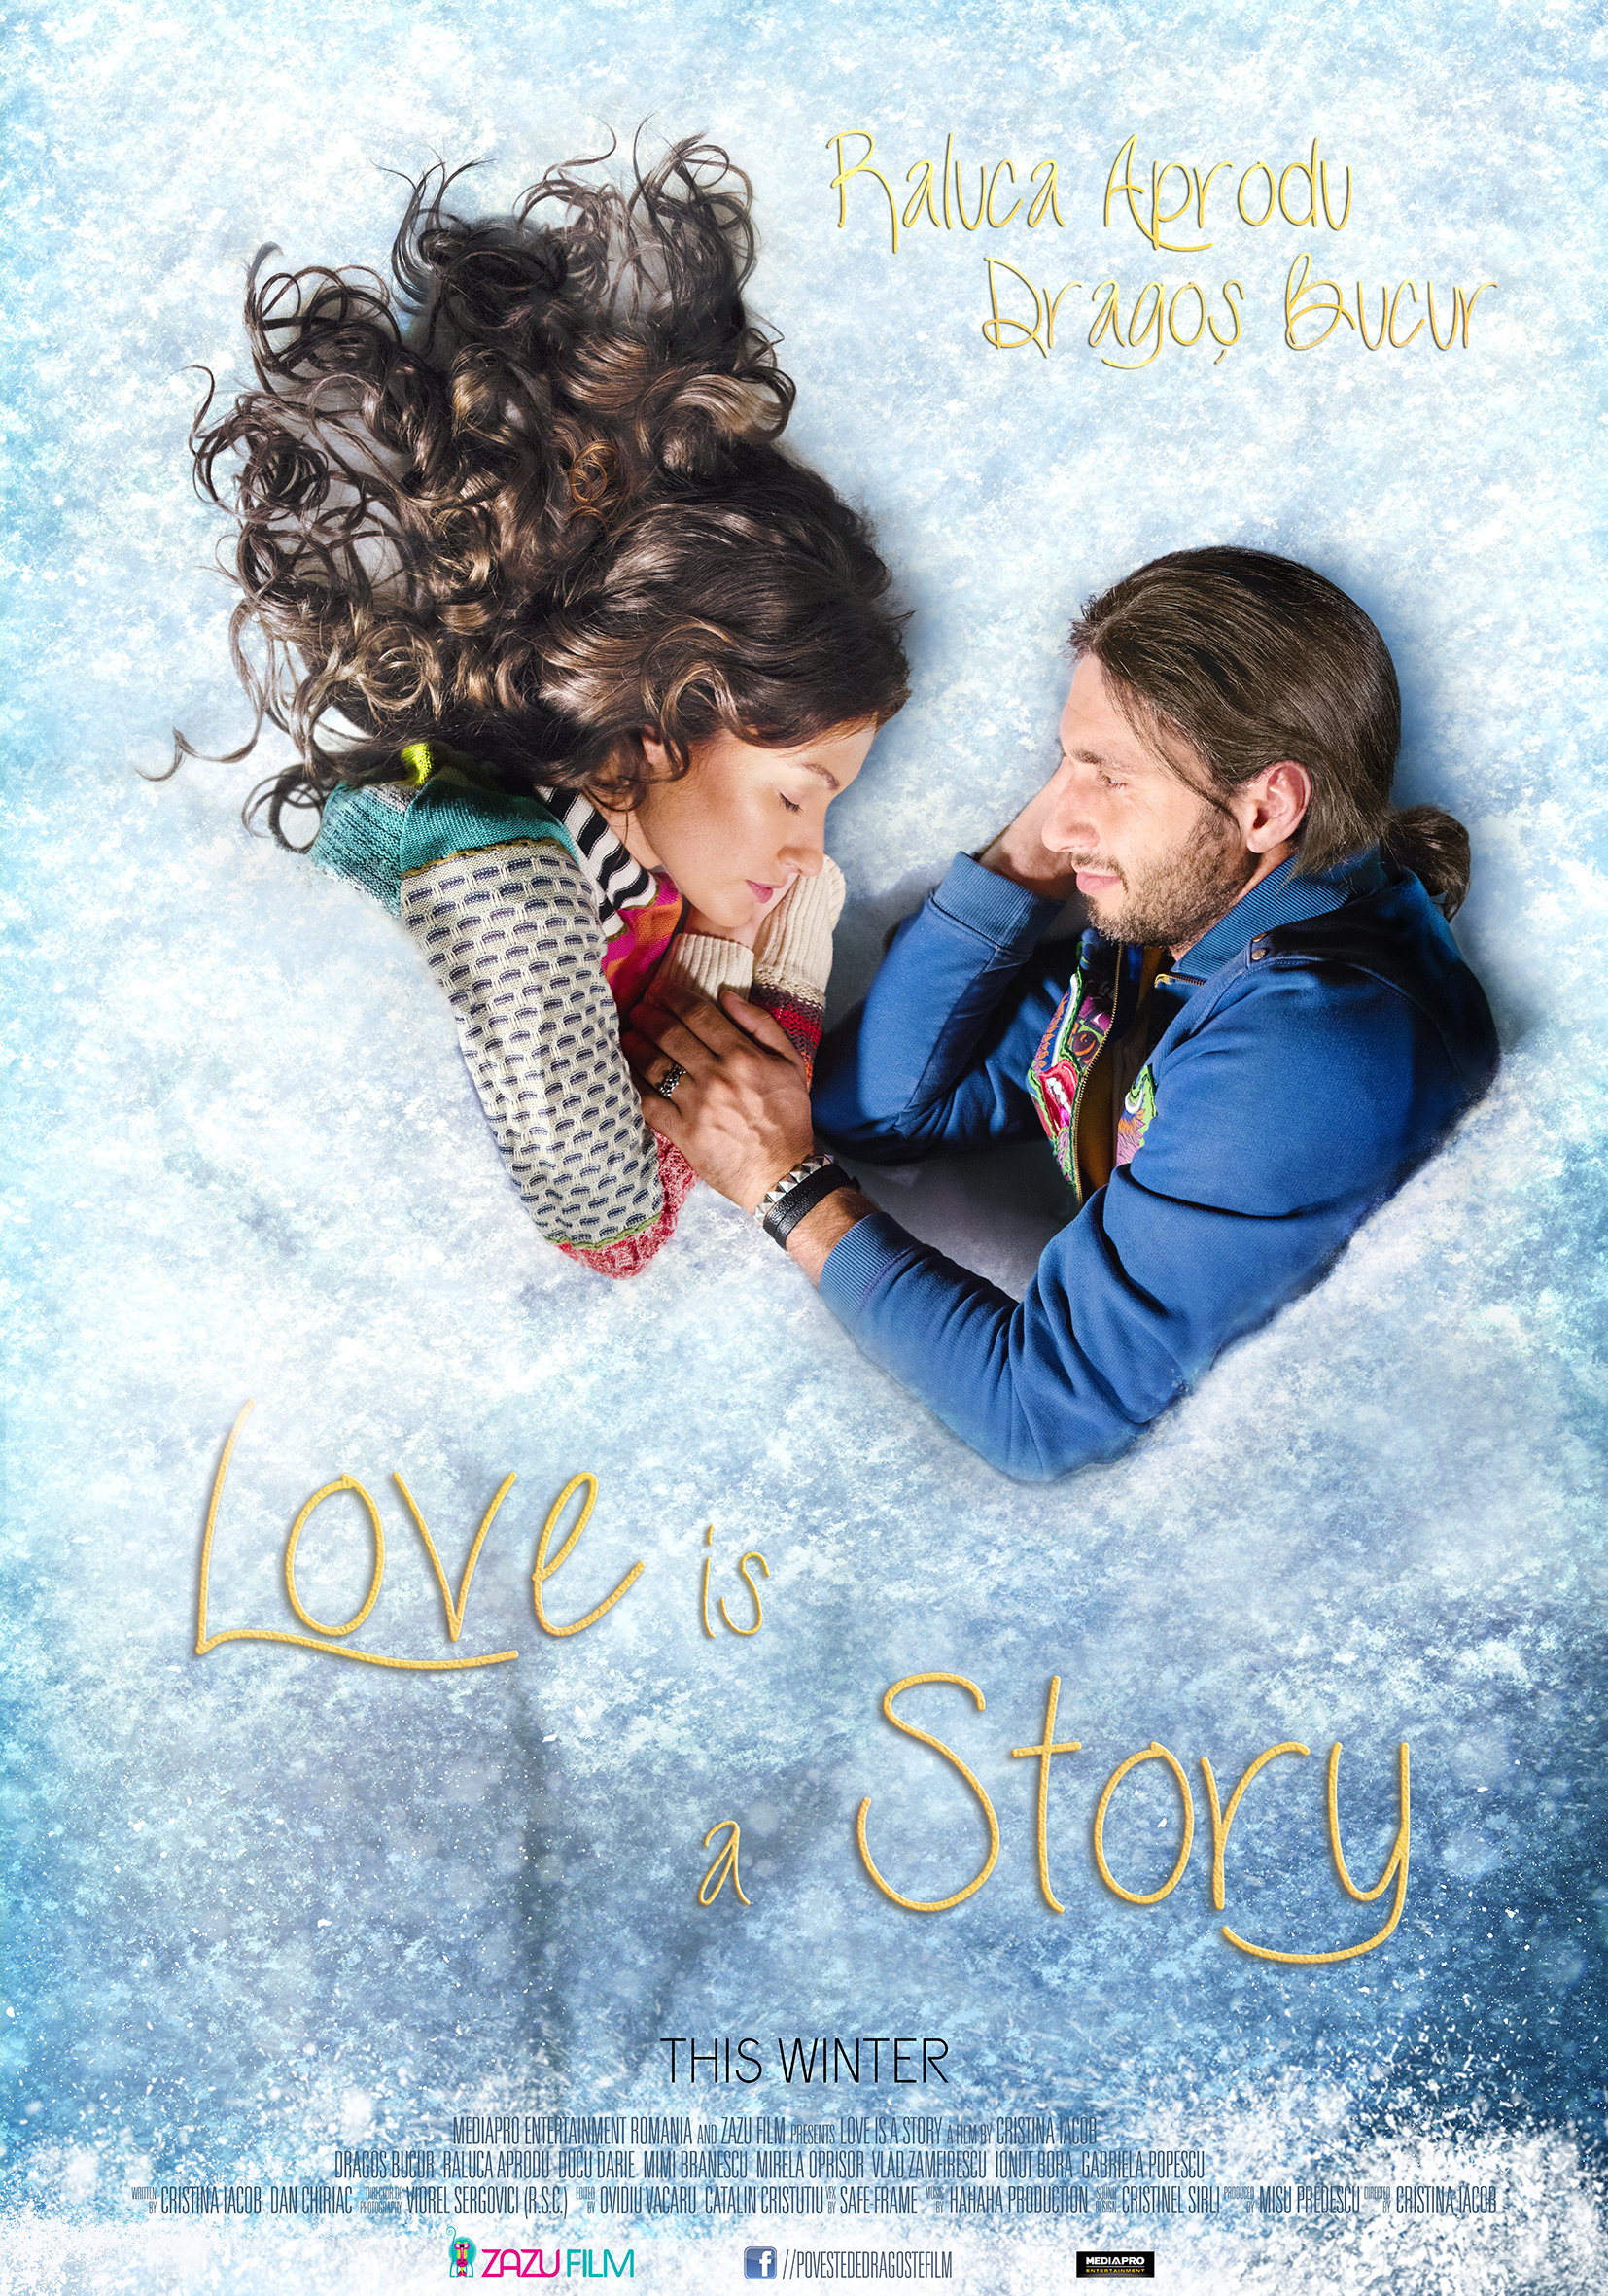 Love Is a Story kapak